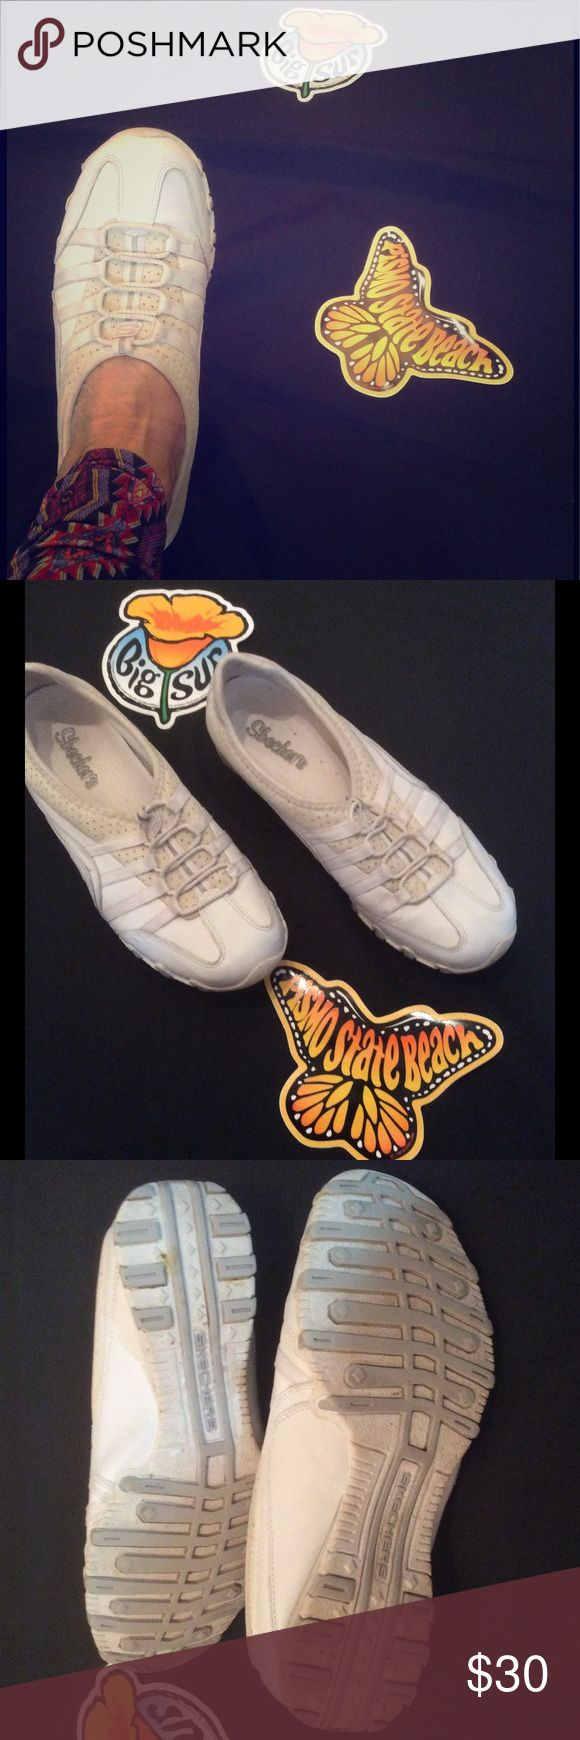 COMFY Slip On White SKECHERS! Barely worn! Great pair of comfortable walking shoes for the ocean, the pavement, vacation, or home. Have a great gripper sole. And no tying laces!!! Very comfortable! Like new! No stains or signs of wear. Skechers Shoes Sneakers